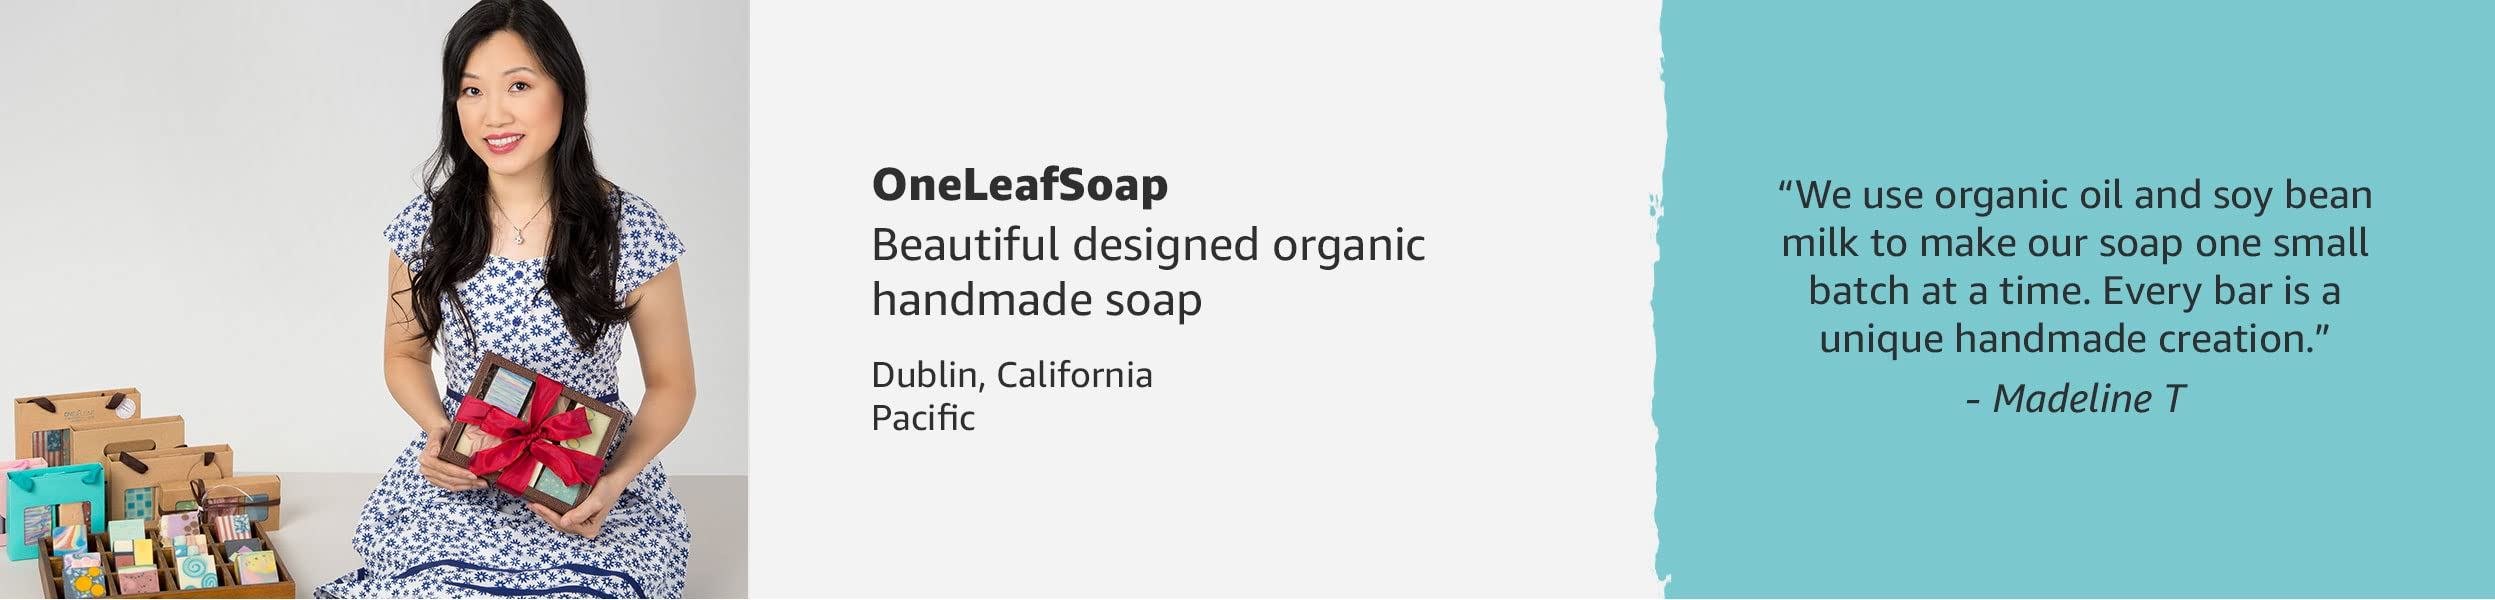 One Leaf Soap